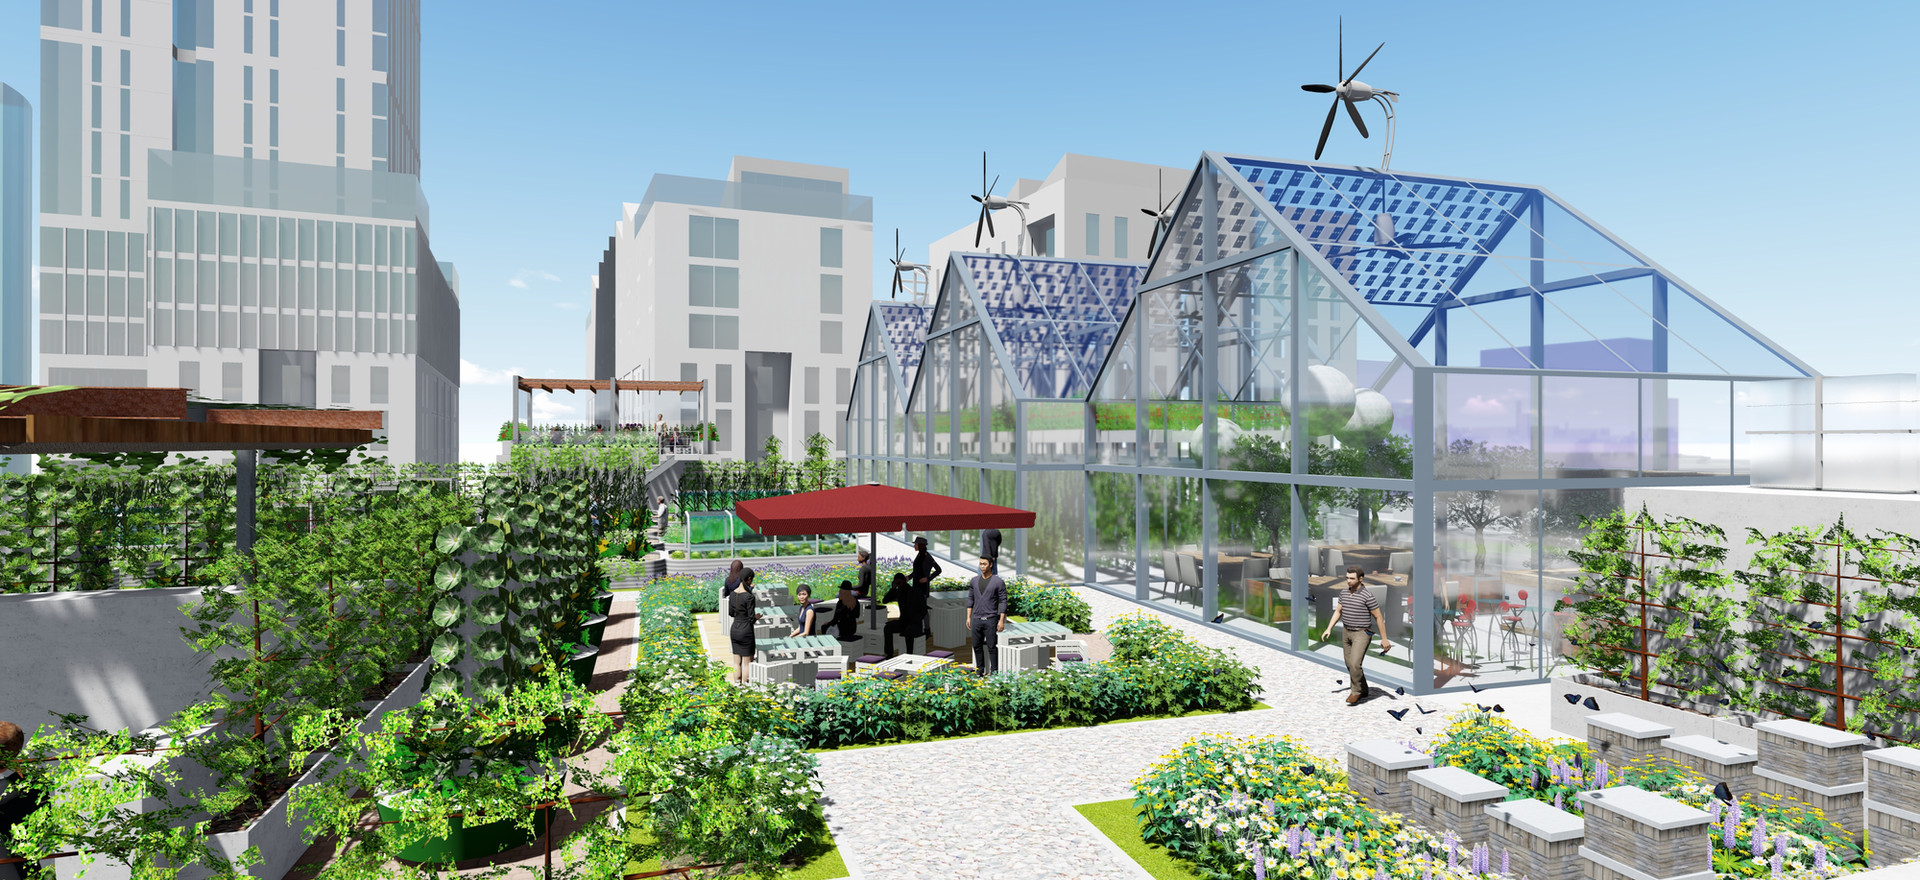 Roof tops can become showcases for the circular economy supporting a wide range of business activities